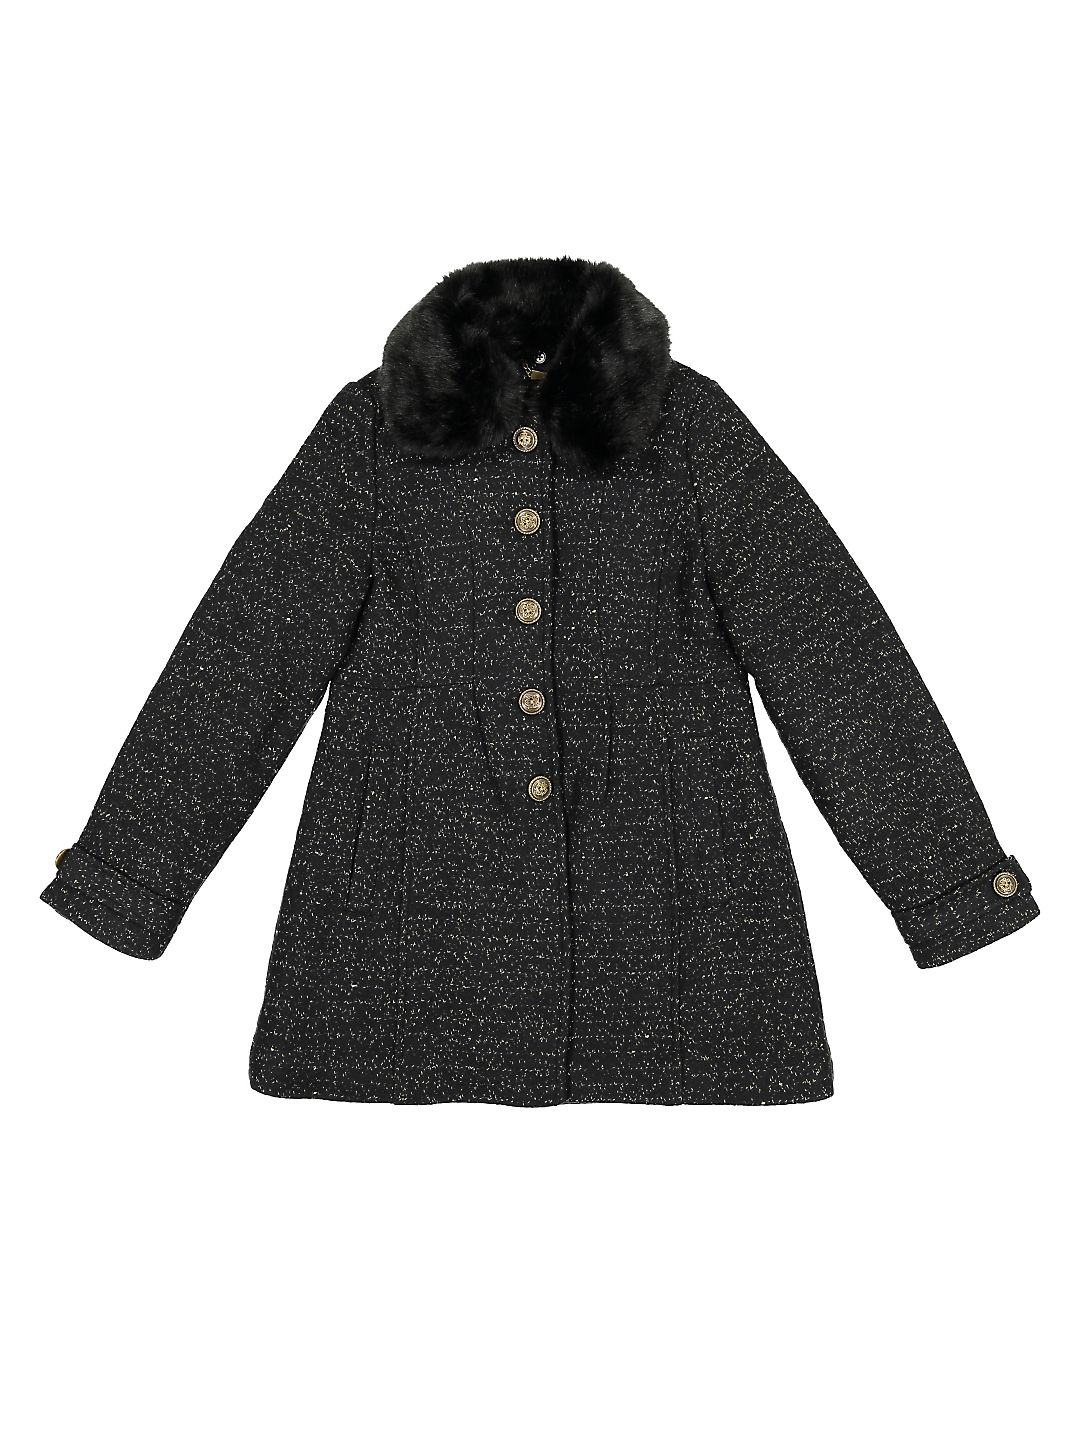 Little Girl's Graphic Faux Fur Jacket